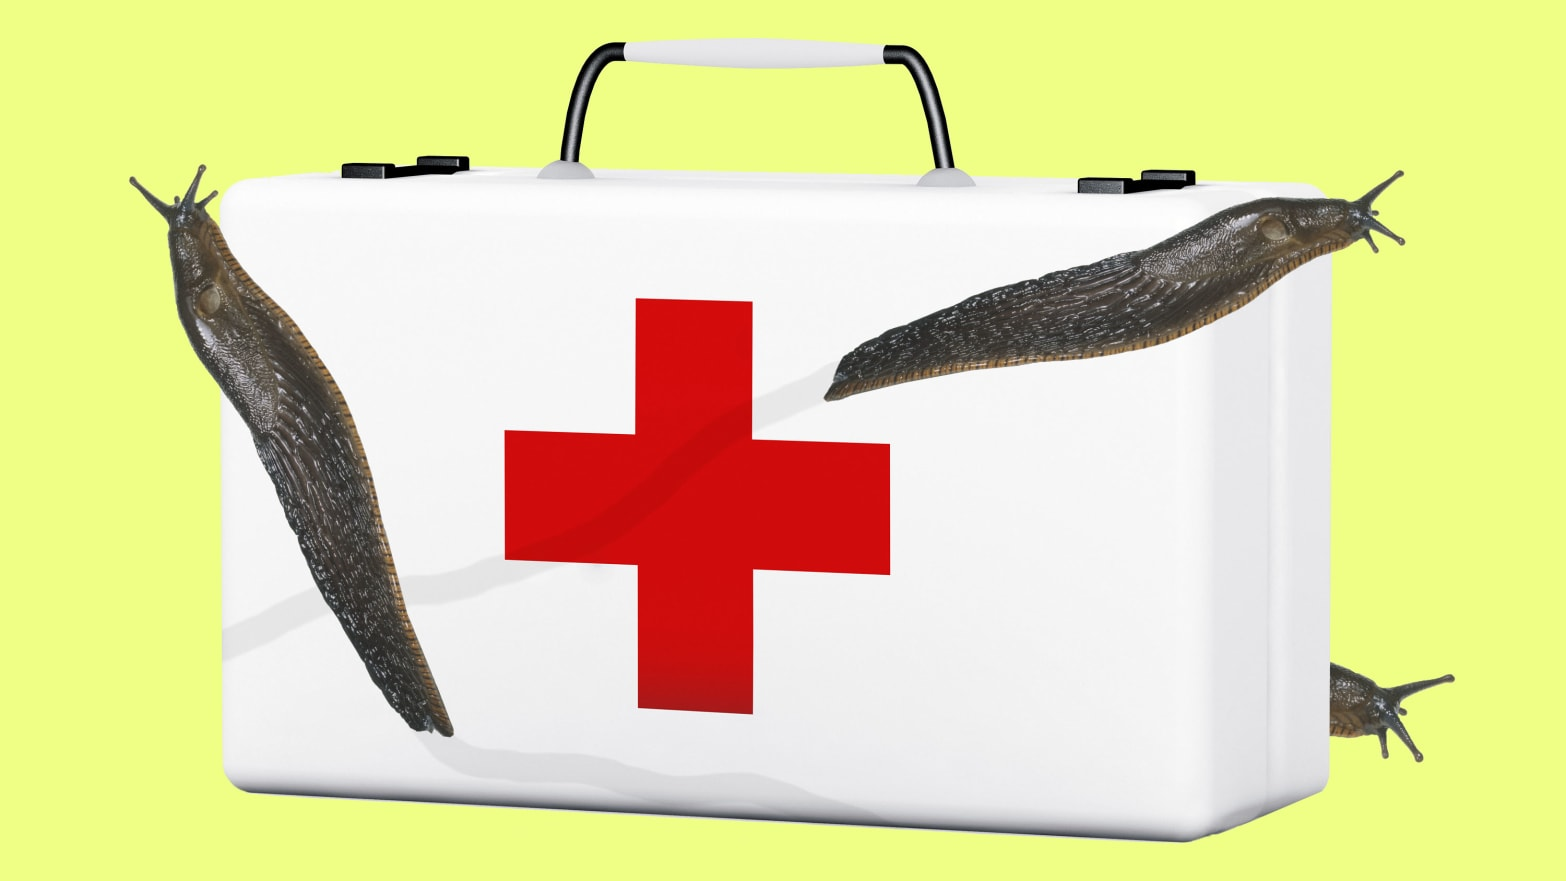 image of a white medical first aid with a red cross in front of the box with three 3 slugs crawling over it in foreground background pastel yellow snail adhesive dusky arion Andrew Smith University of Ithaca